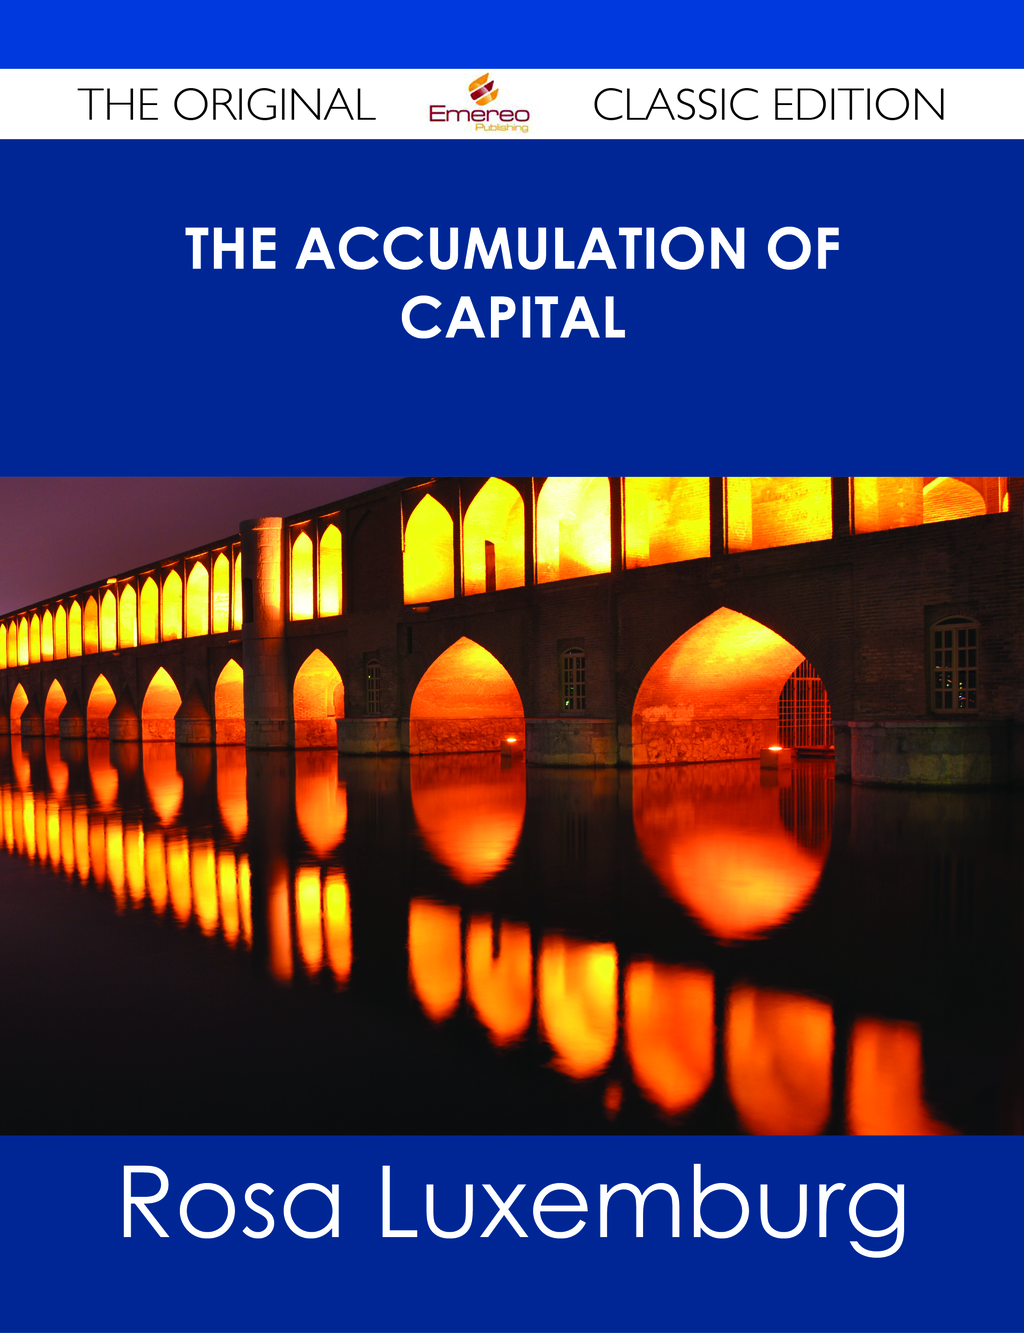 The Accumulation of Capital - The Original Classic Edition